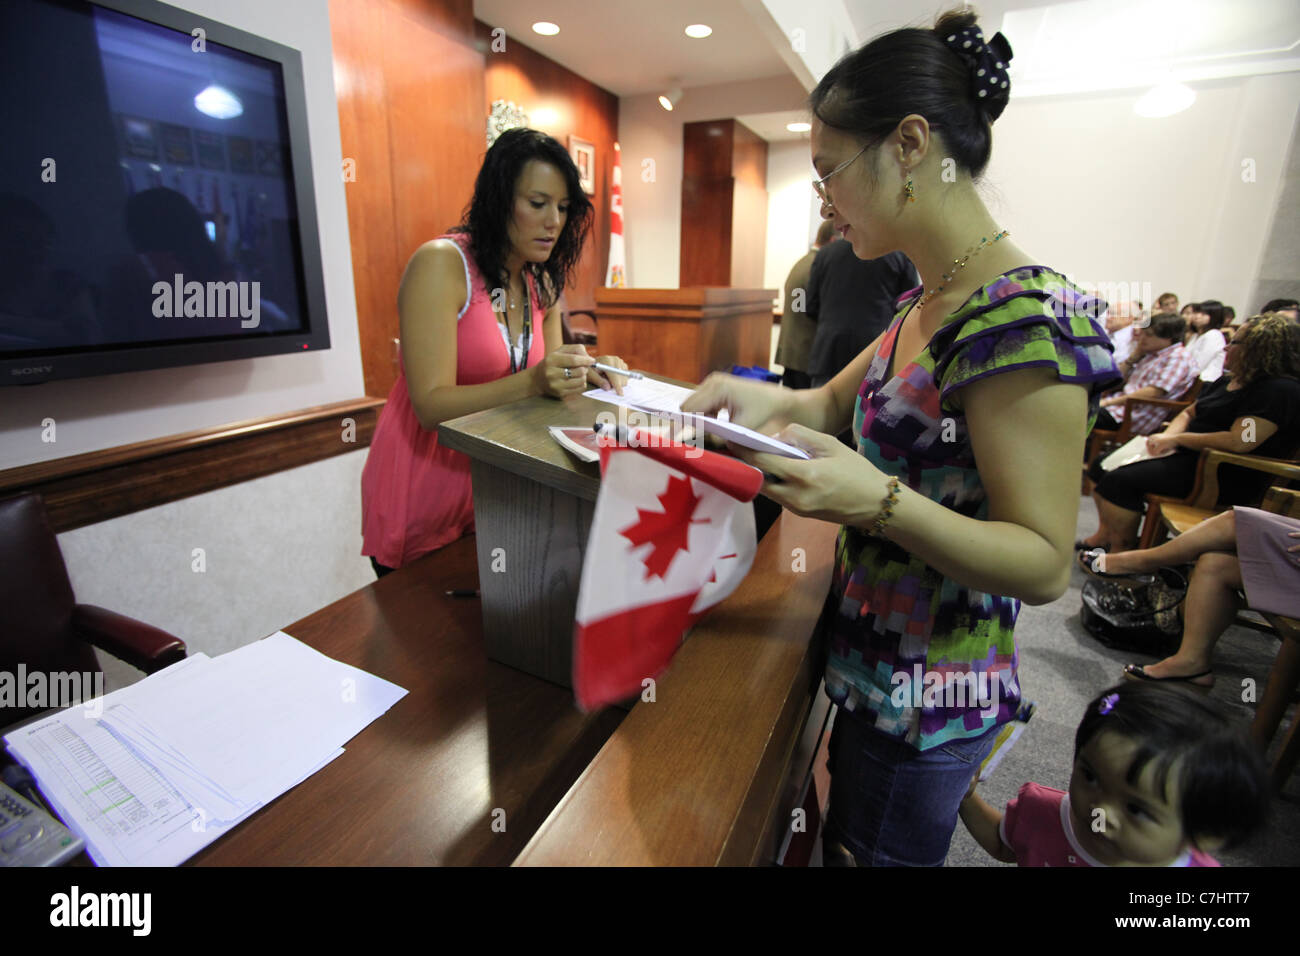 New Canadian citizens attend a citizenship ceremony in Kitchener, Ontario - Stock Image